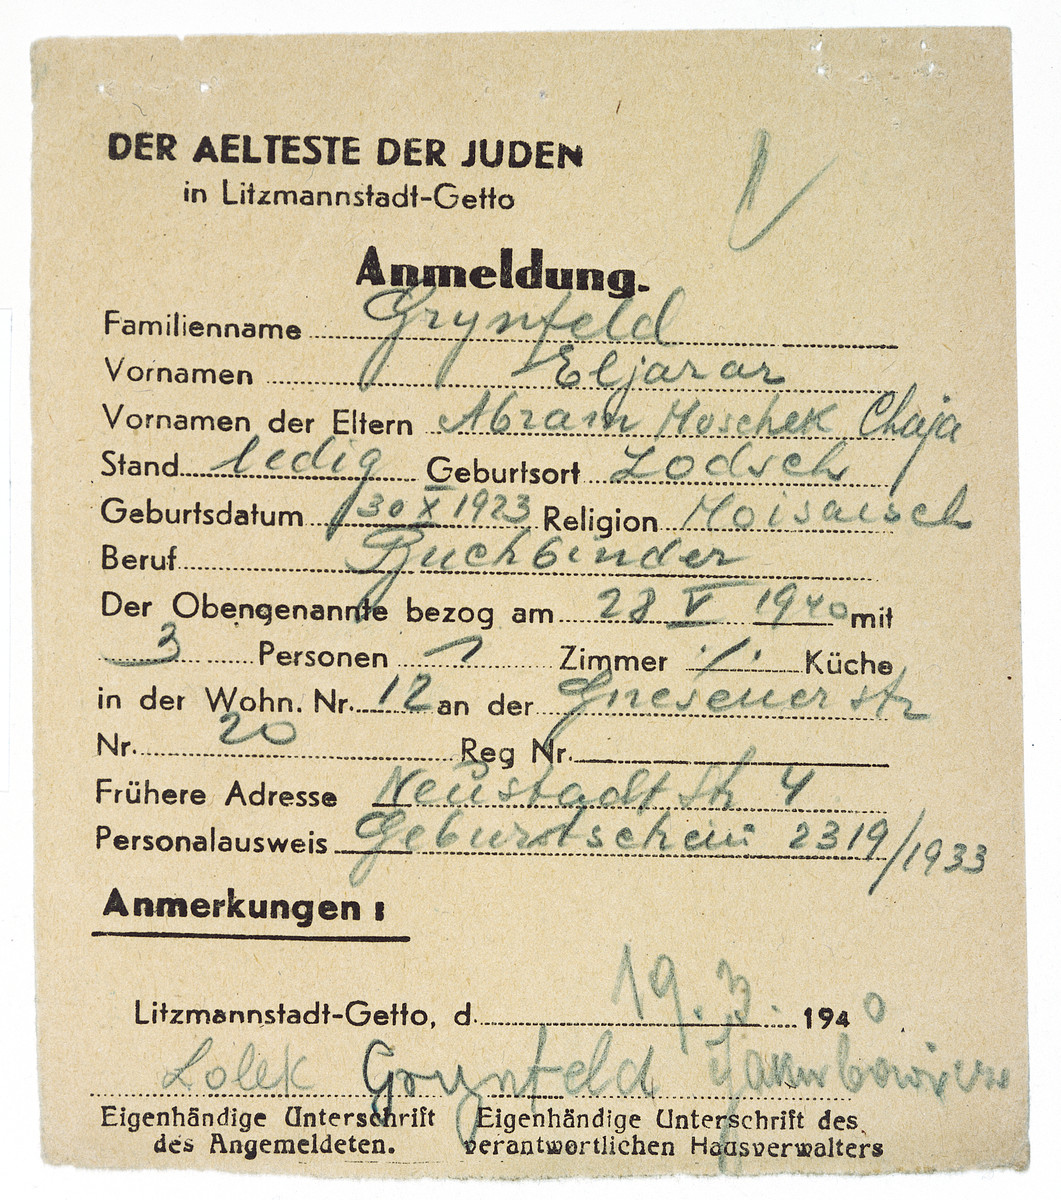 Registration card issued by the Jewish Council in the Lodz ghetto to Eliezer Grynfeld.  It states that Eliezer Grynfeld, son of Abram Moszek and Chaja, who was born on October 30, 1923 in Lodz has been assigned to reside as of May 28, 1940, with 3 people in 1 room at 20 Gneisen Street (Gnieznienska) in the ghetto.  This registration was issued on March 19, 1940; signed by Eliezer Grynfeld and Jakubowicz.